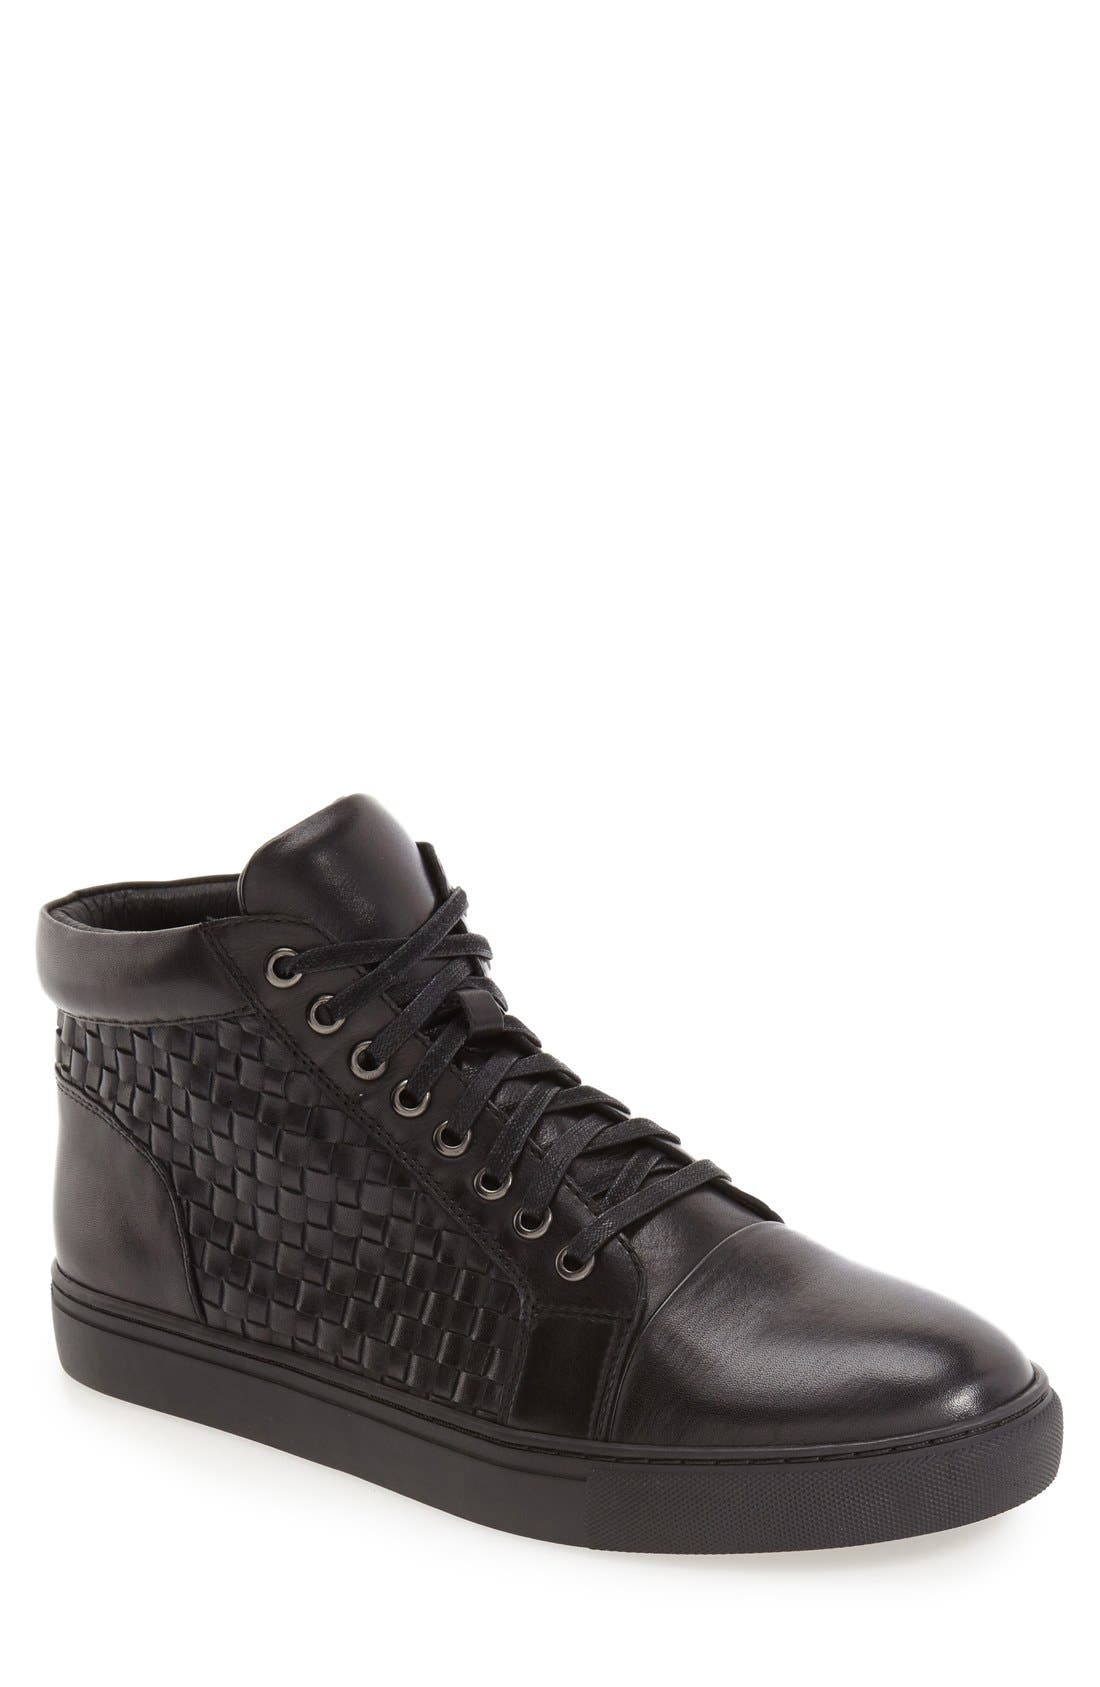 Main Image - Zanzara Soul High Top Sneaker (Men)